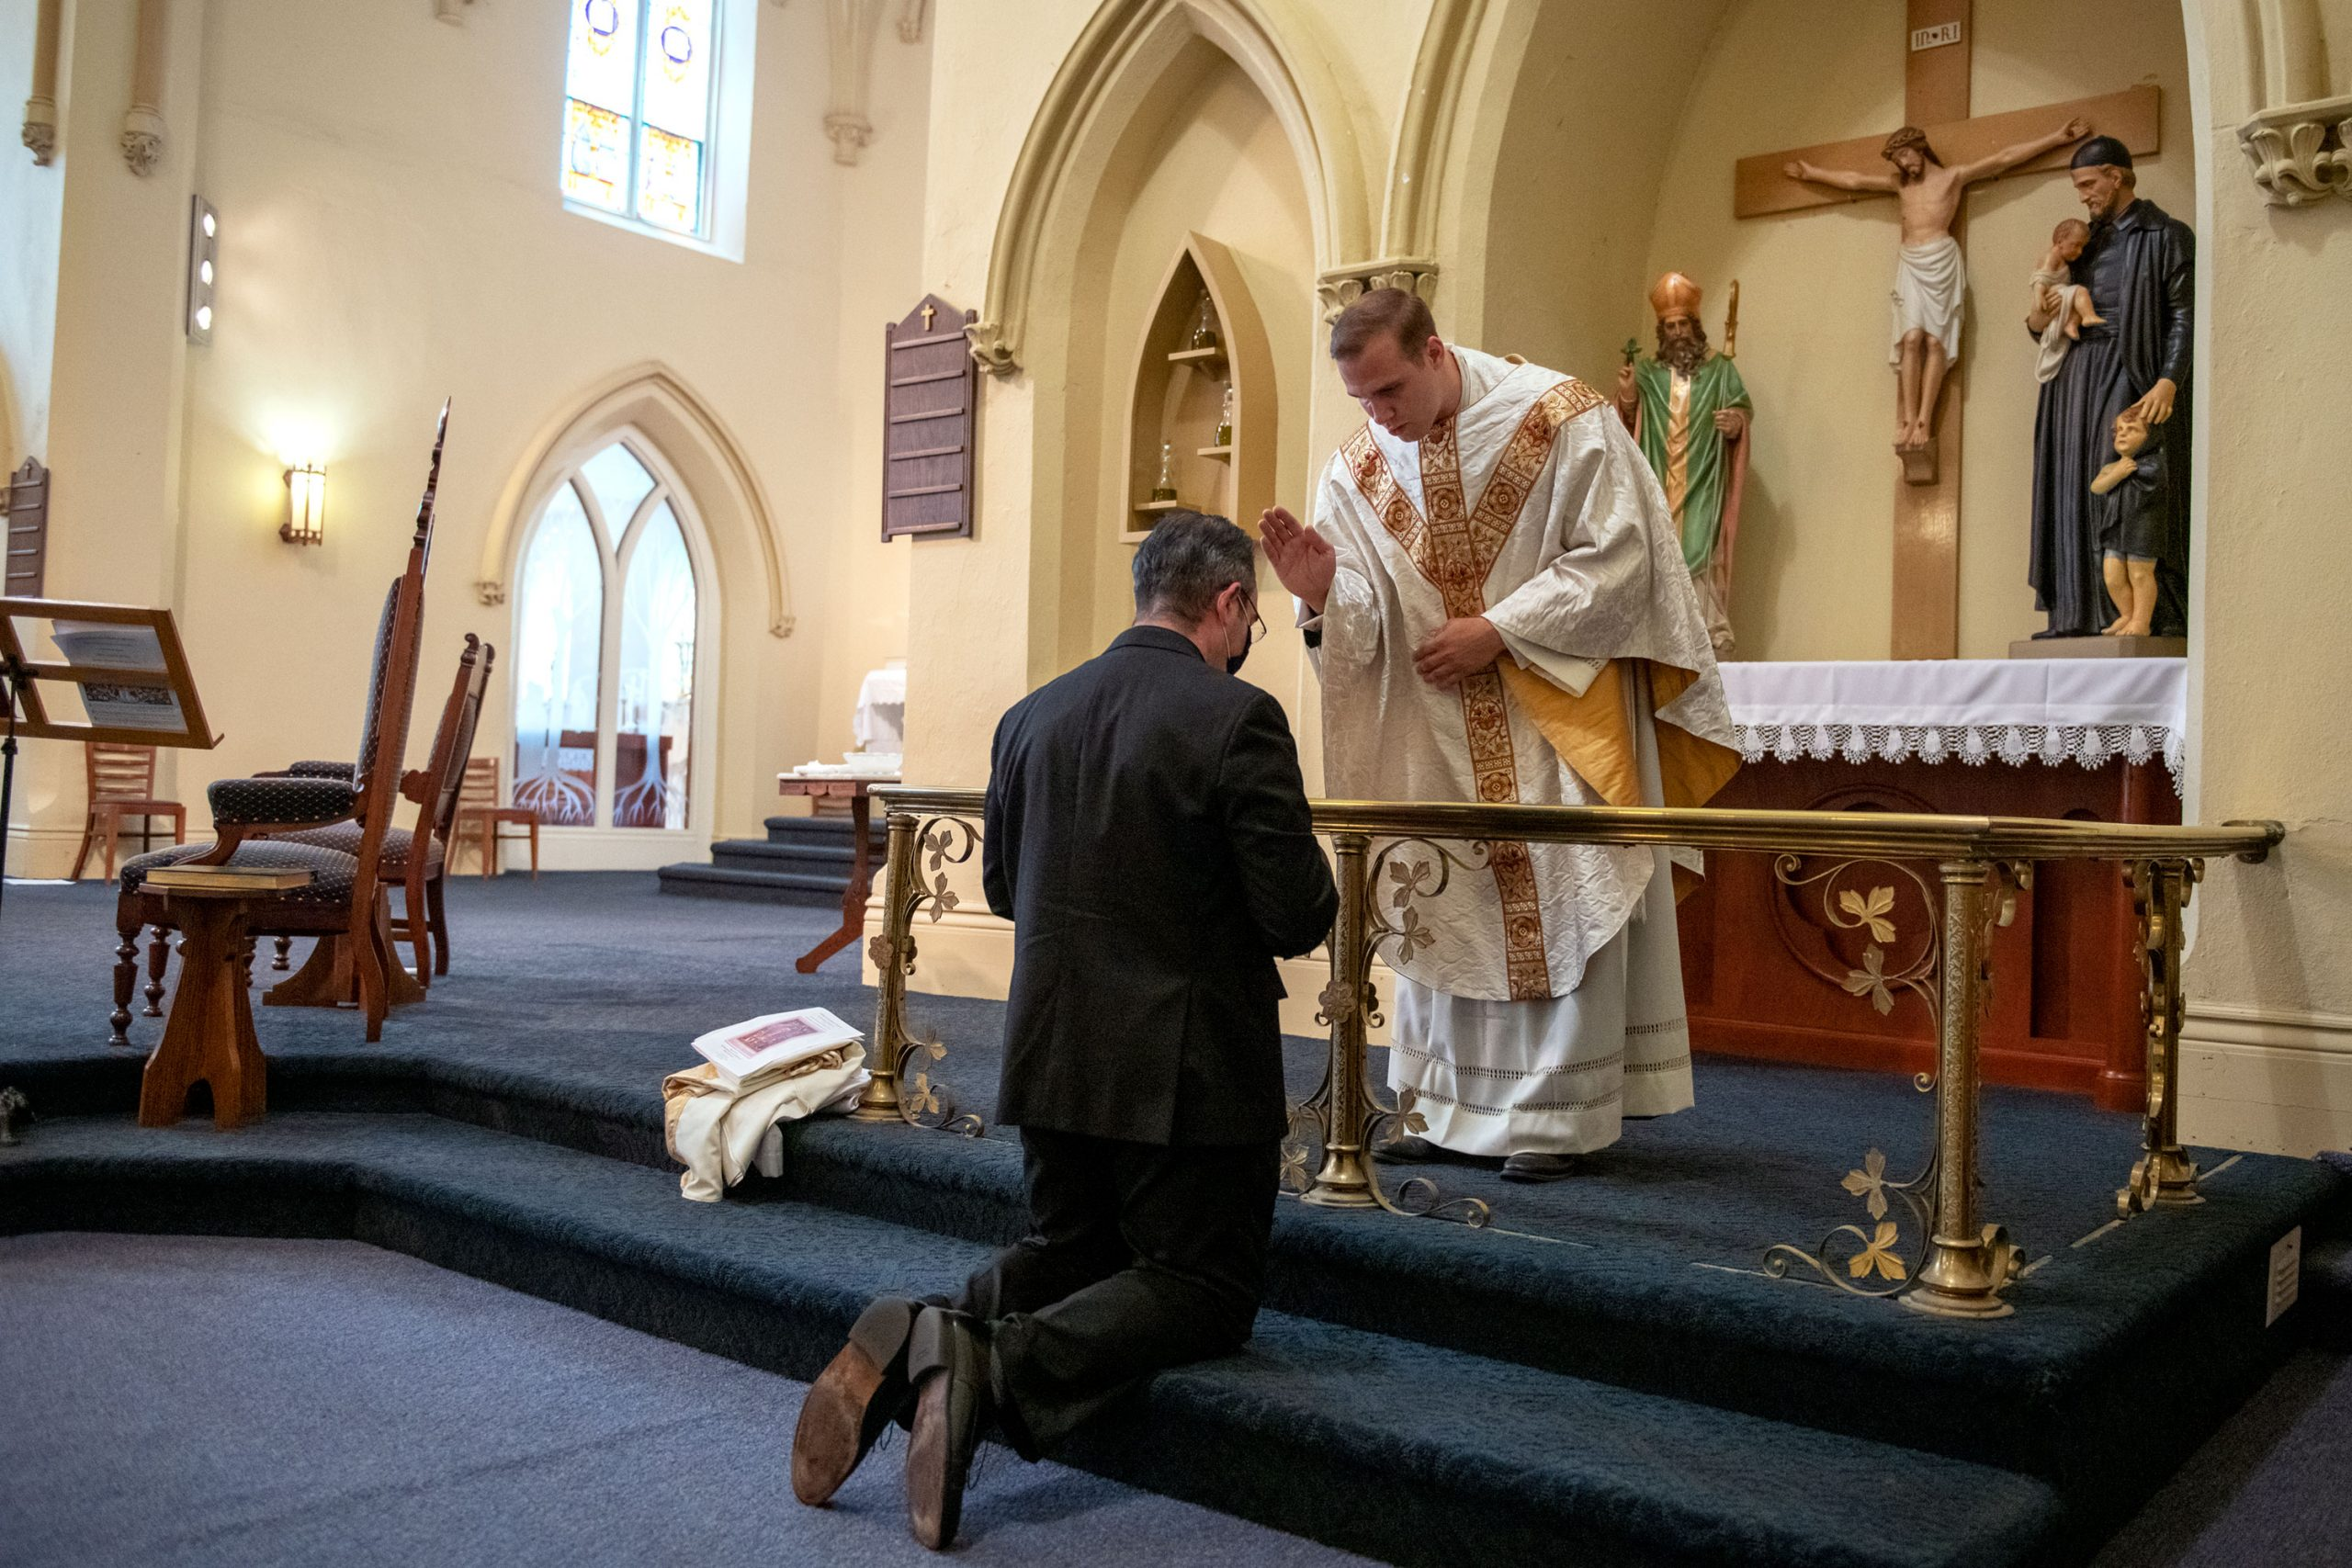 Father William Coffas receives a blessing from Father Martuscello.